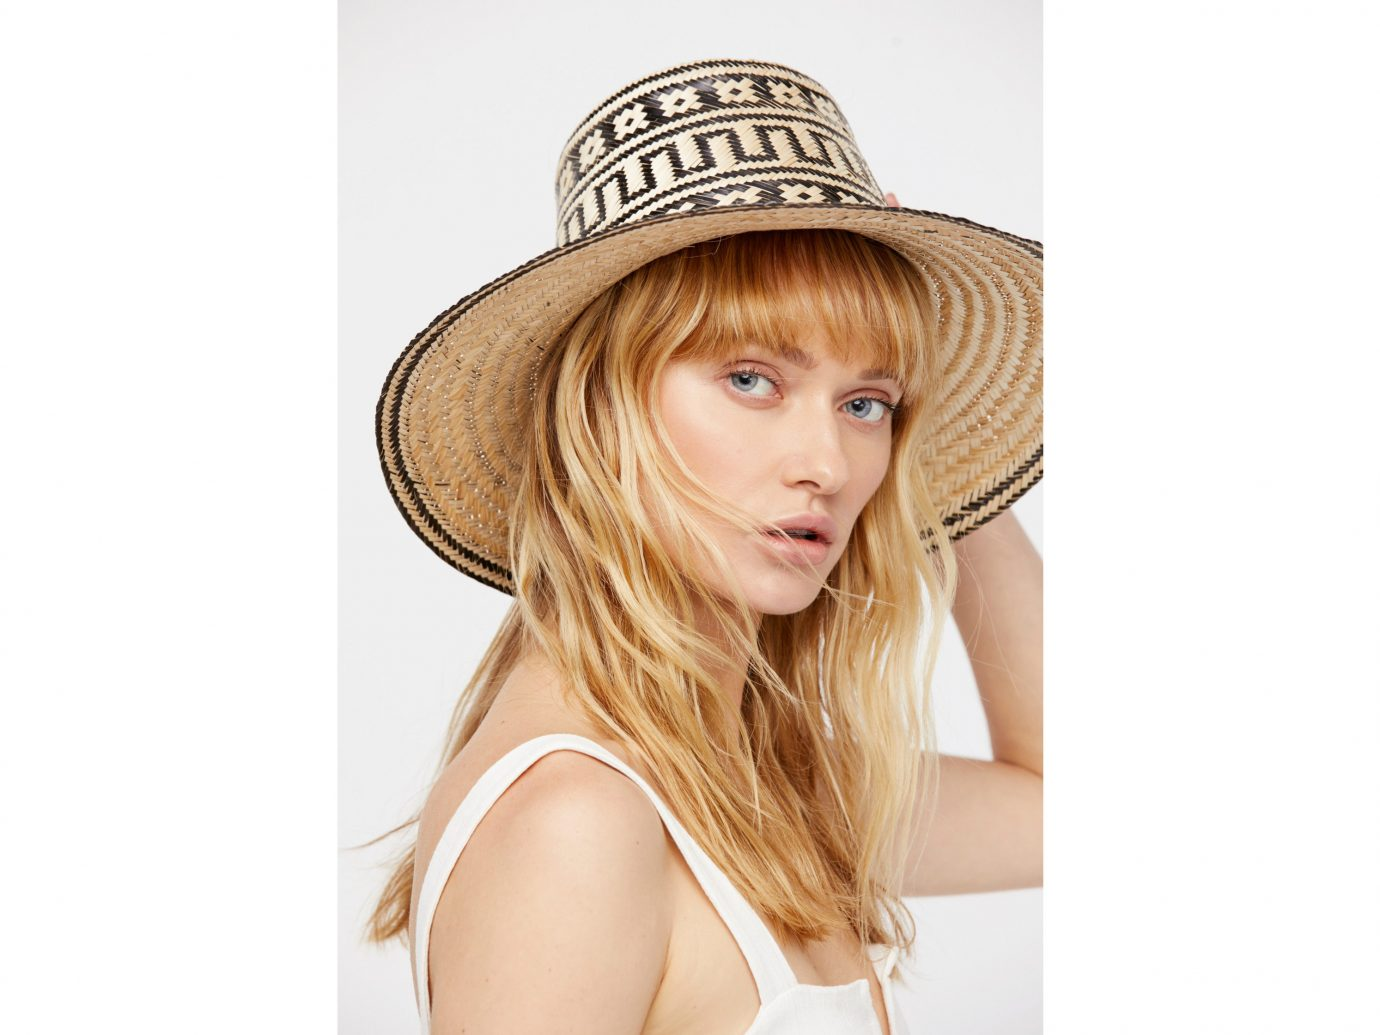 Style + Design person wearing human hair color hat young headgear sun hat fashion accessory blond fedora posing fashion model beige brown hair hair coloring beautiful dressed